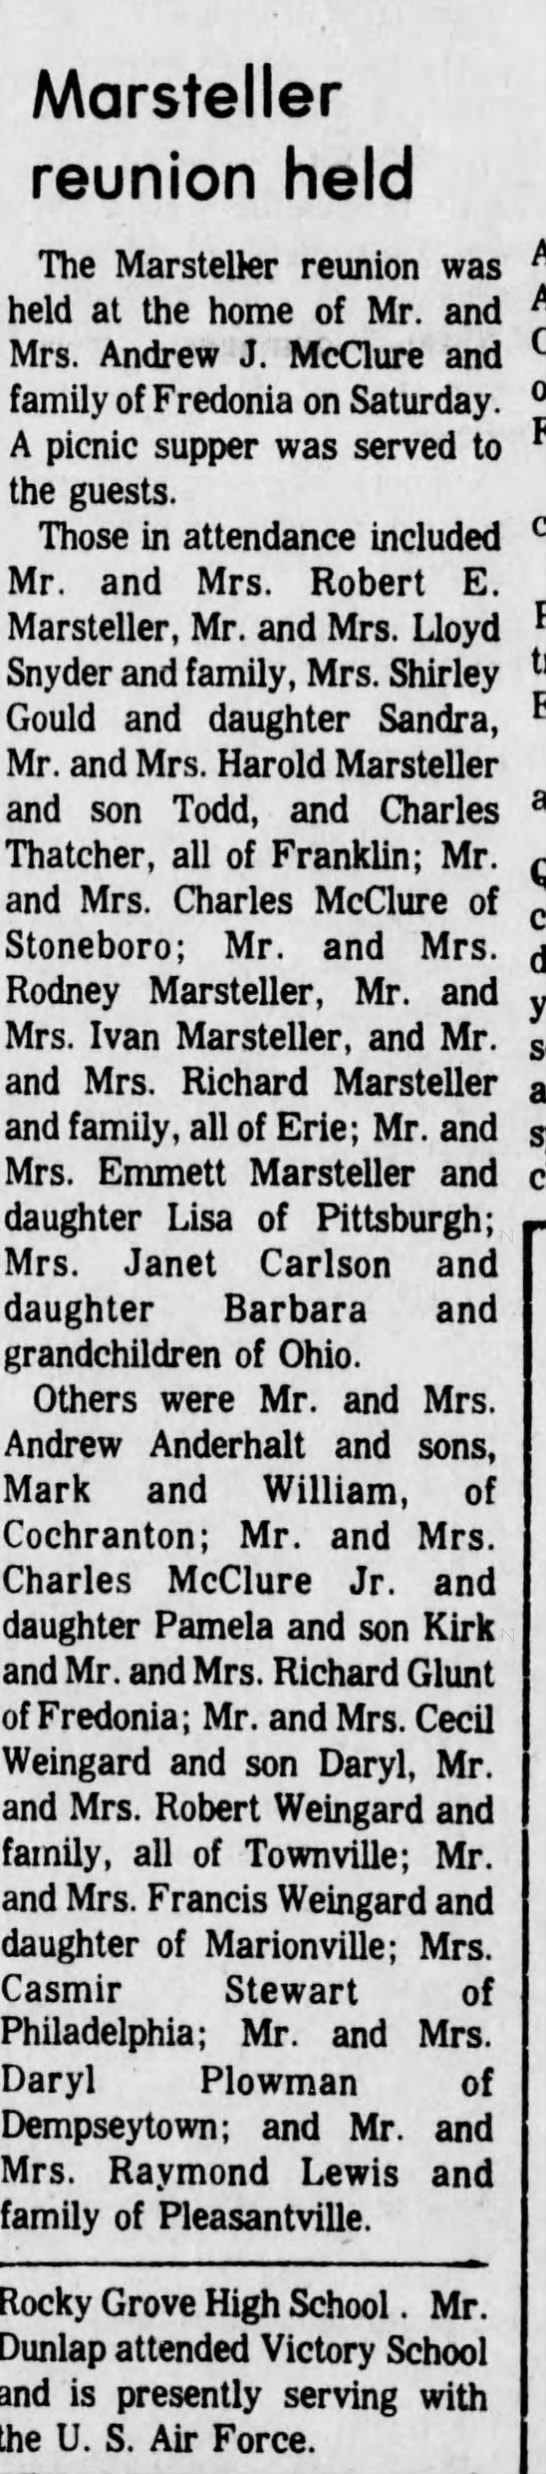 the news-herald franklin pa aug 26 1974 -